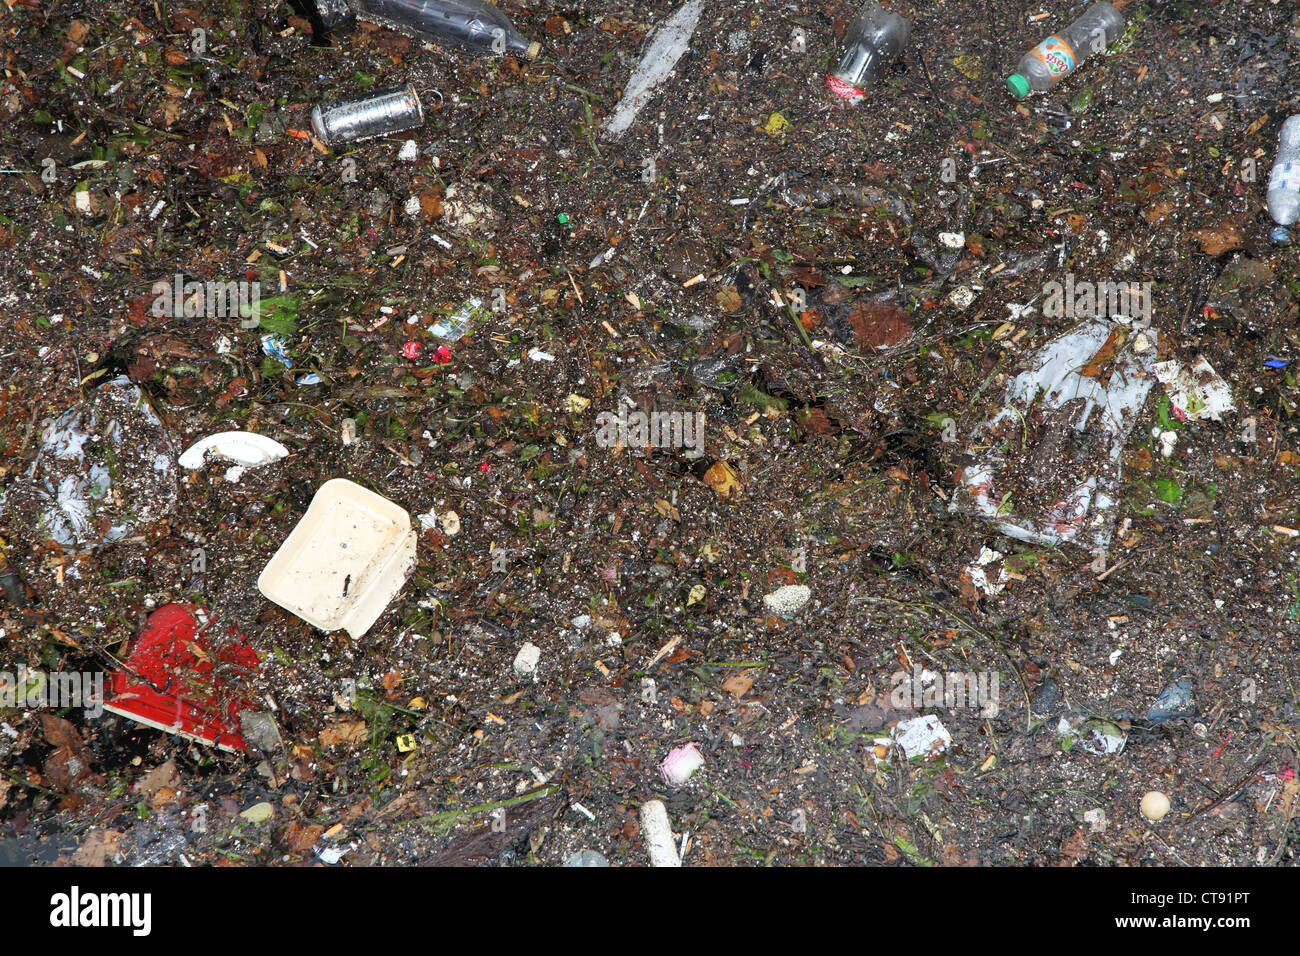 Debris floating on the surface of the river Seine in Paris - Stock Image